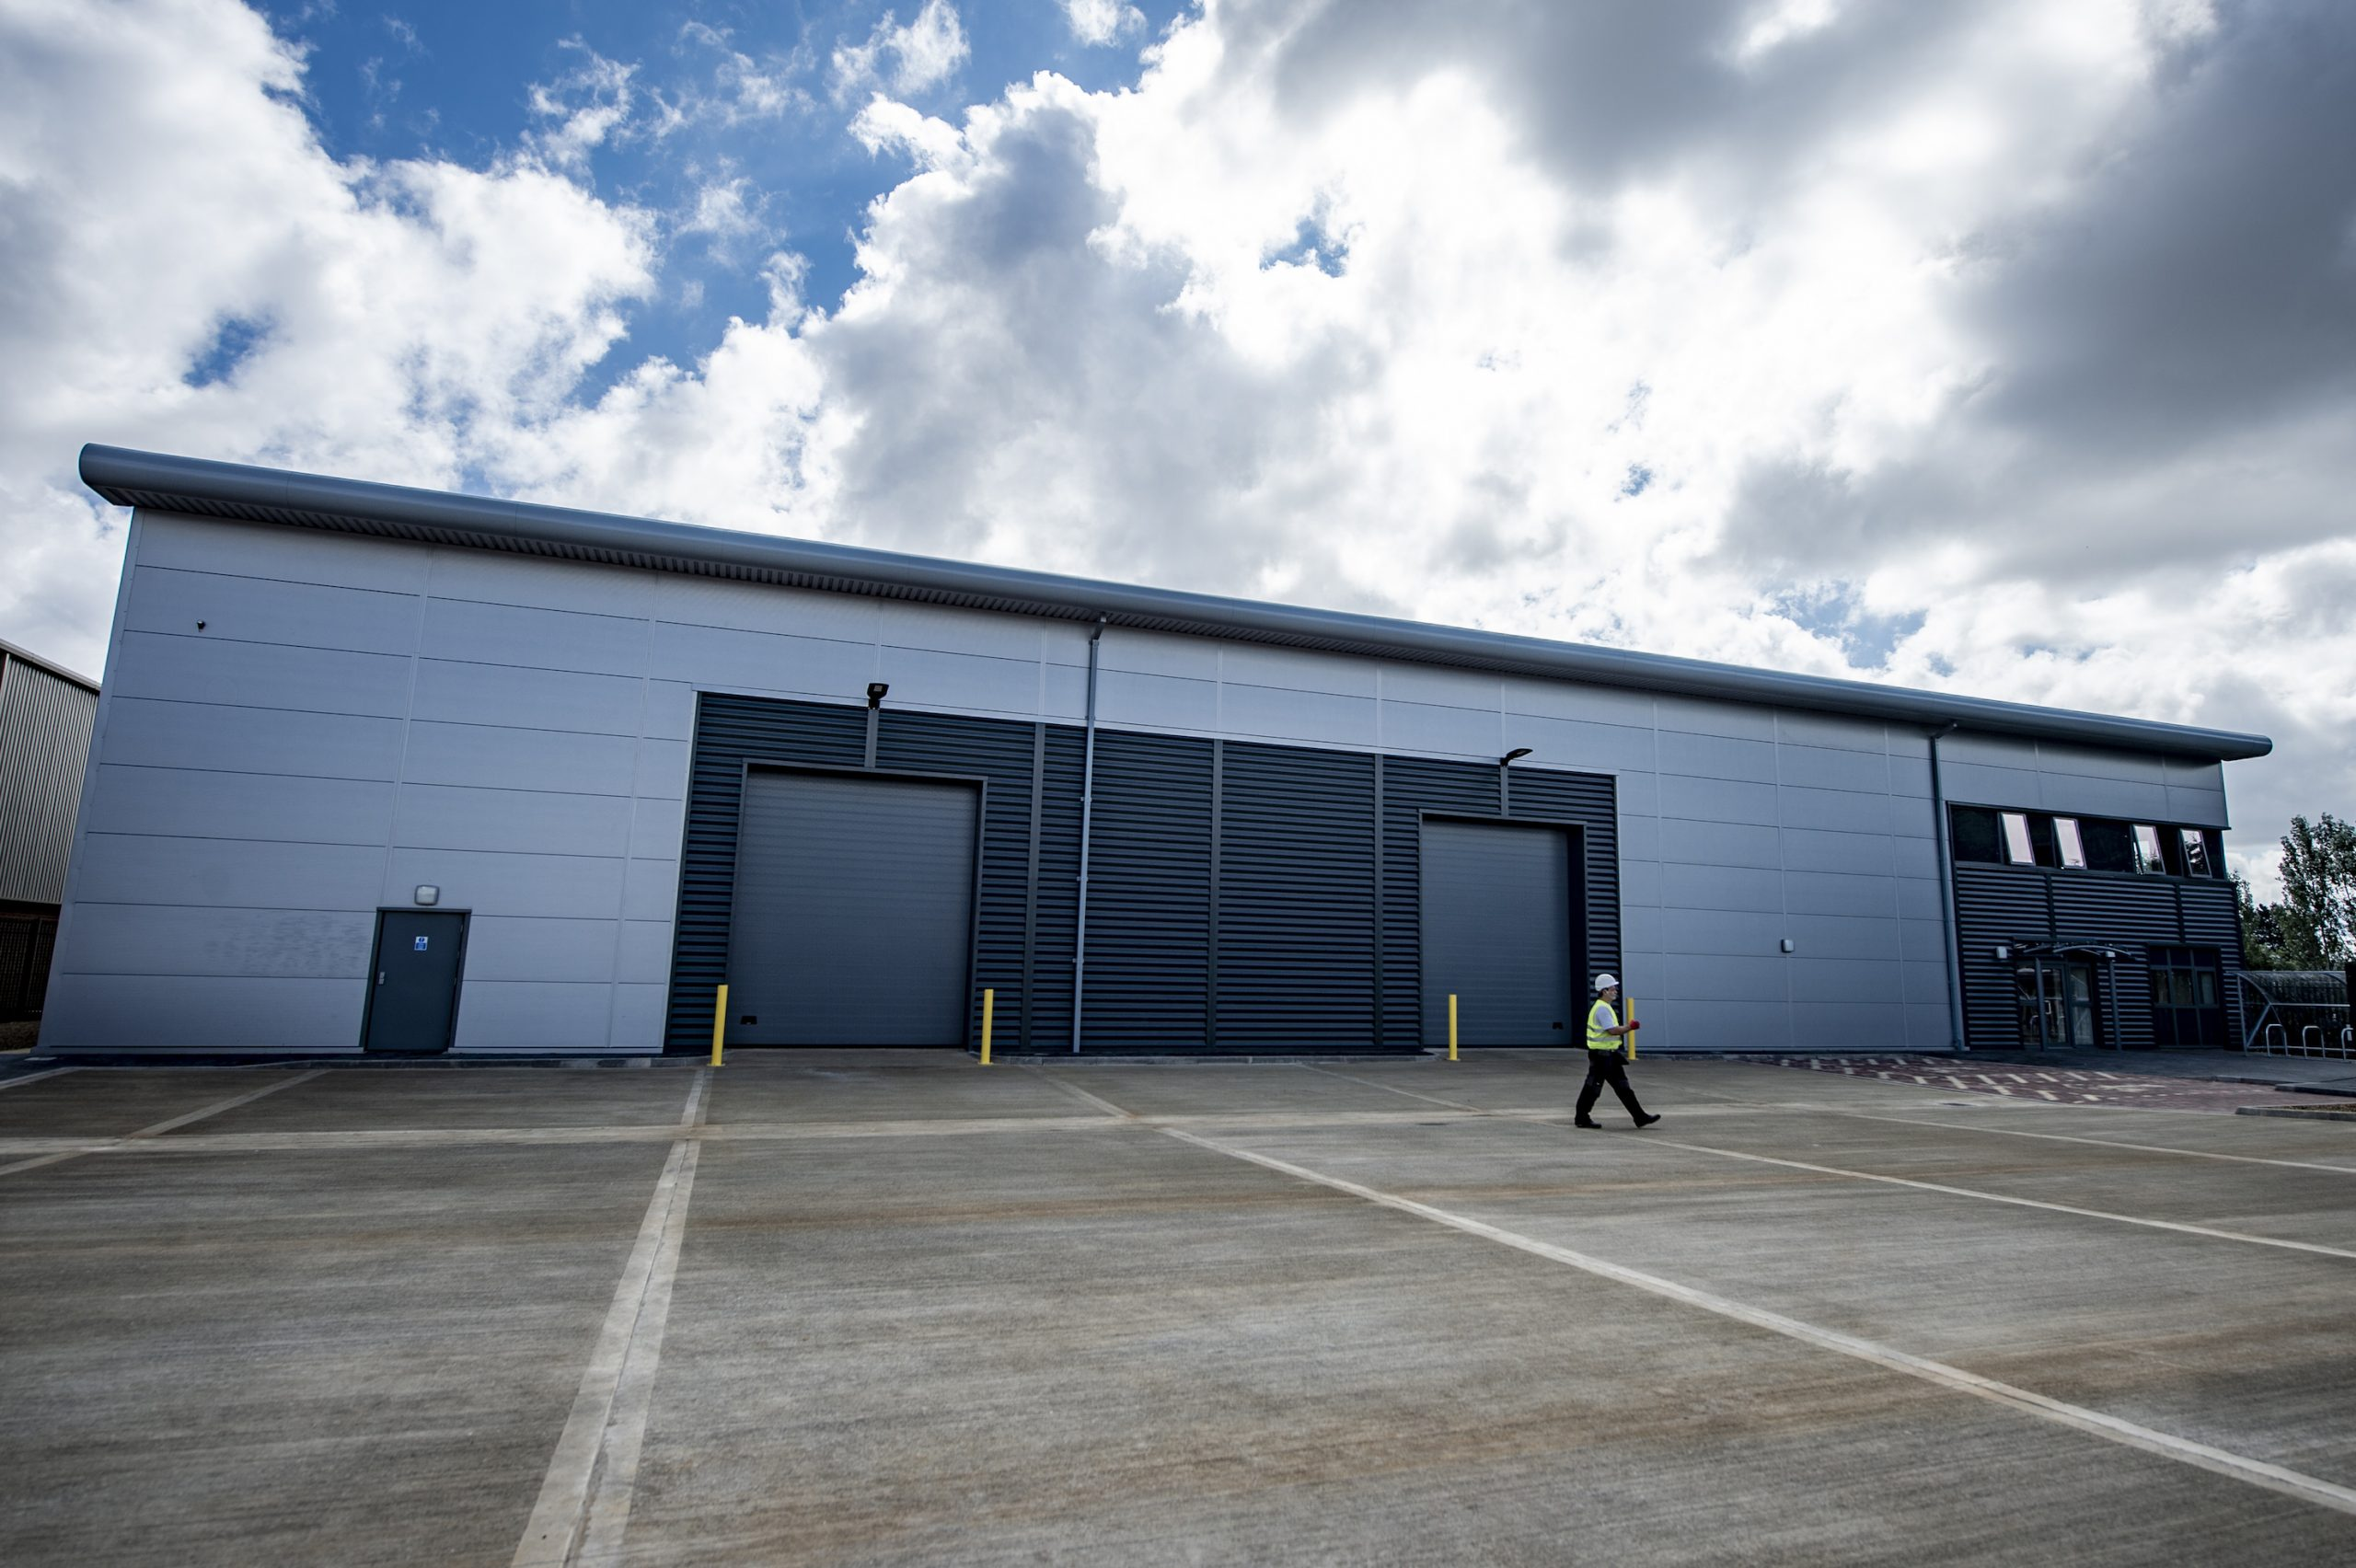 STEPNELL SHOWCASES UNIQUE END-TO-END APPROACH AT RECENT WAREHOUSE COMPLETION